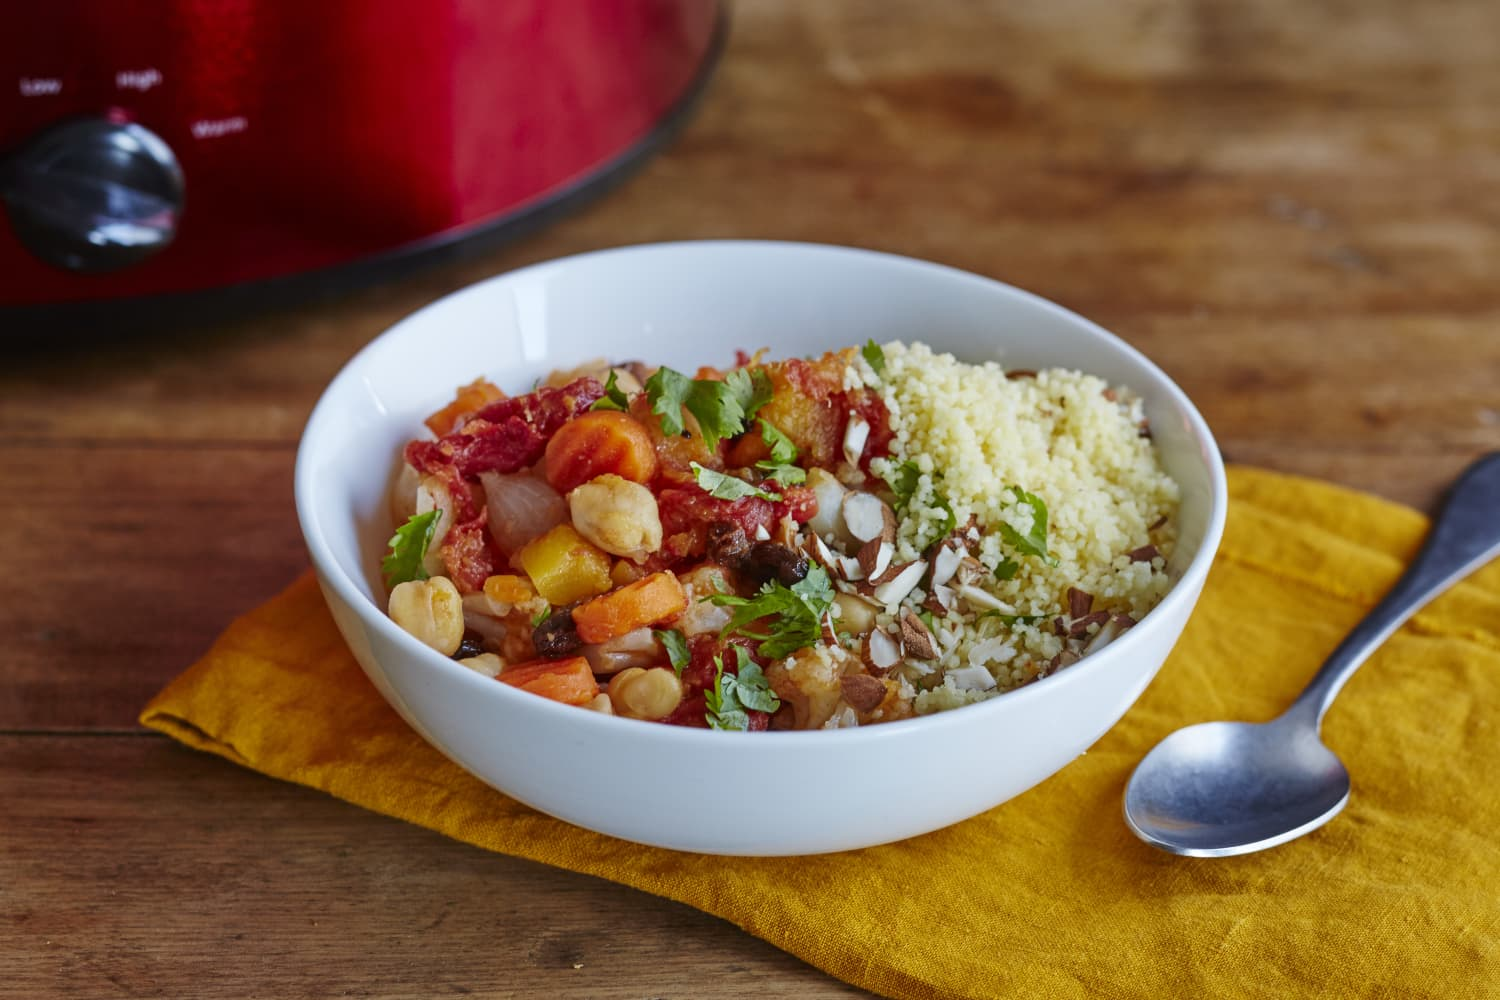 Recipe: Freezer-to-Slow-Cooker Vegetable Tagine